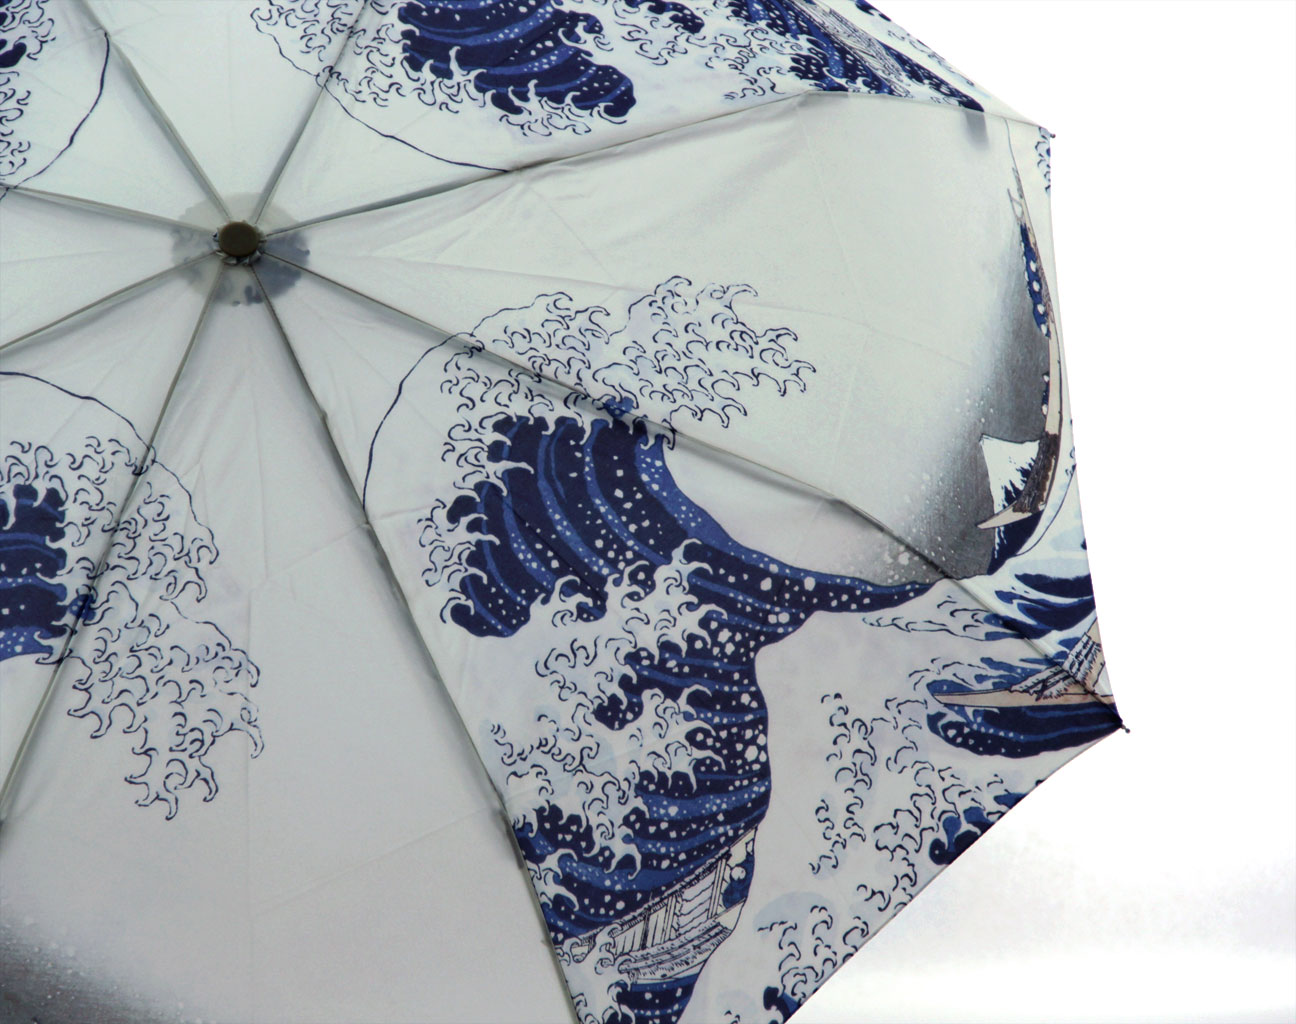 Mount fuji custom print umbrella